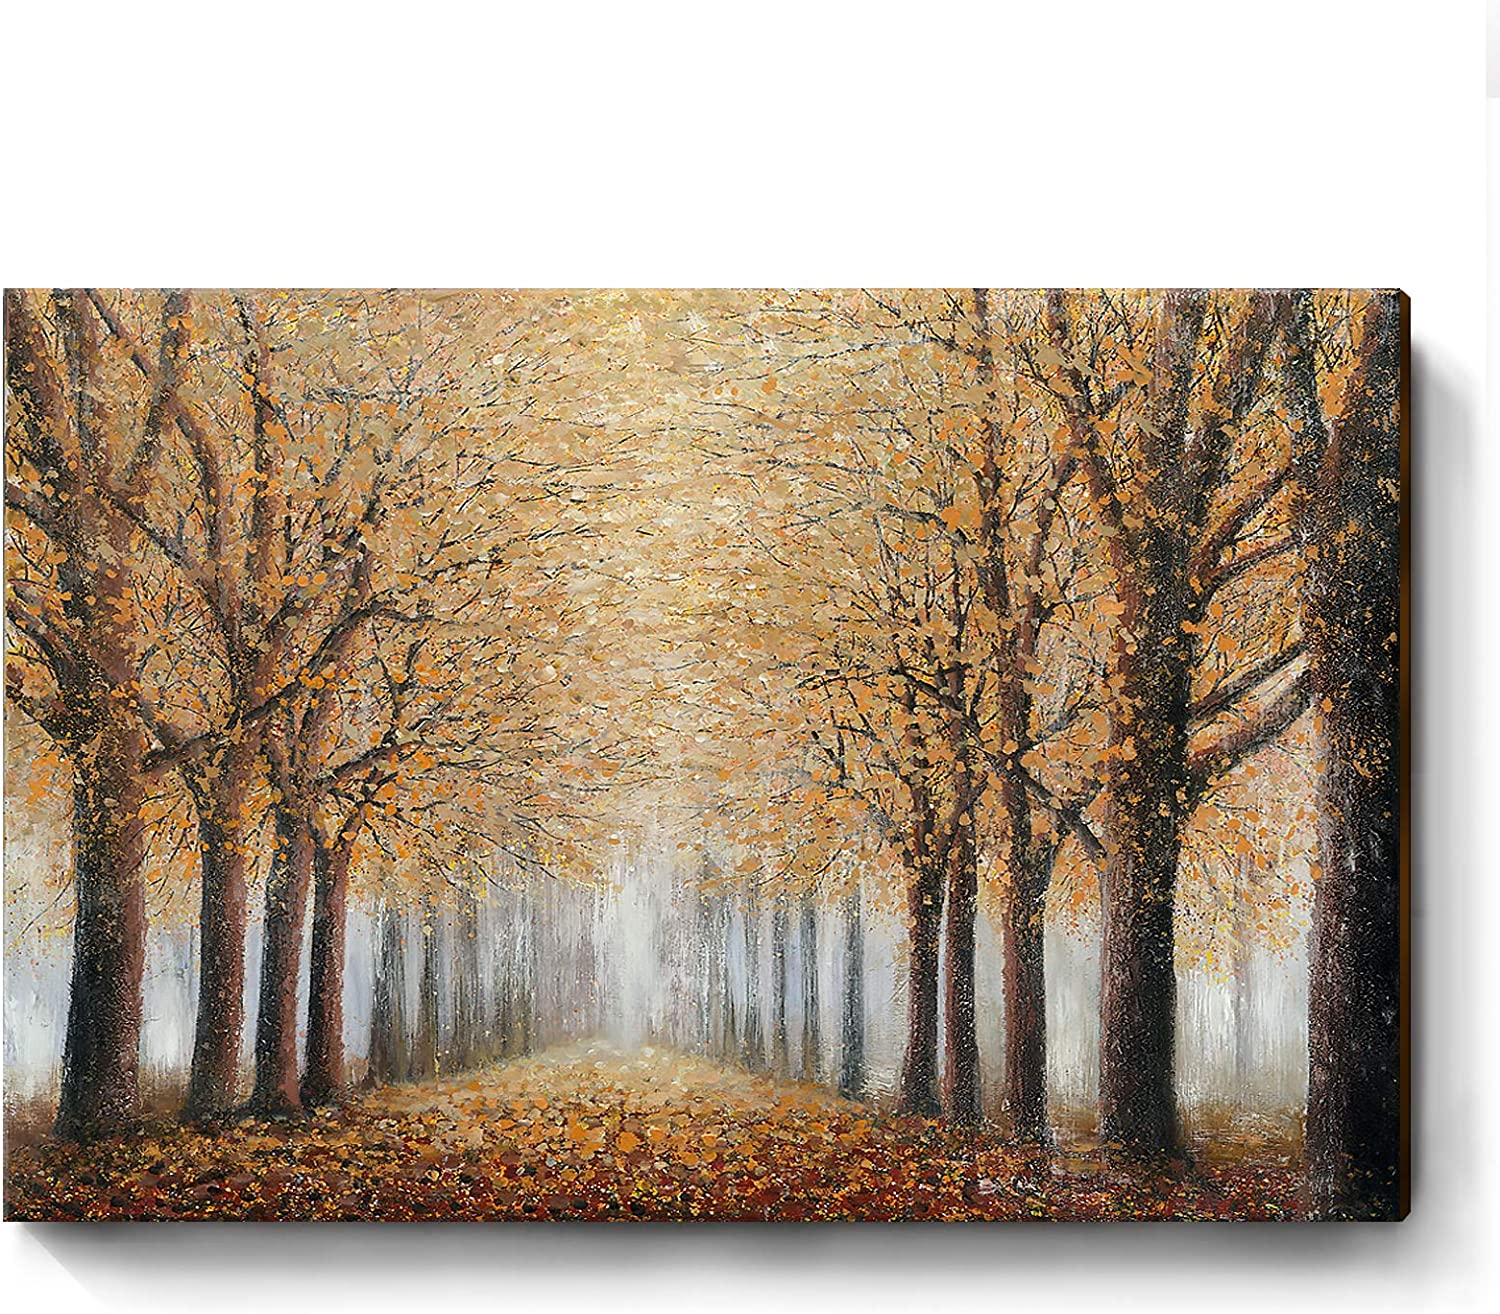 Autumn Forest Canvac Art Oil Painting Nature Canvas Wall Art Trees Wall Art Autumn Forest Oil Painting Trees Wall Decor Oil Trees Wall Decor